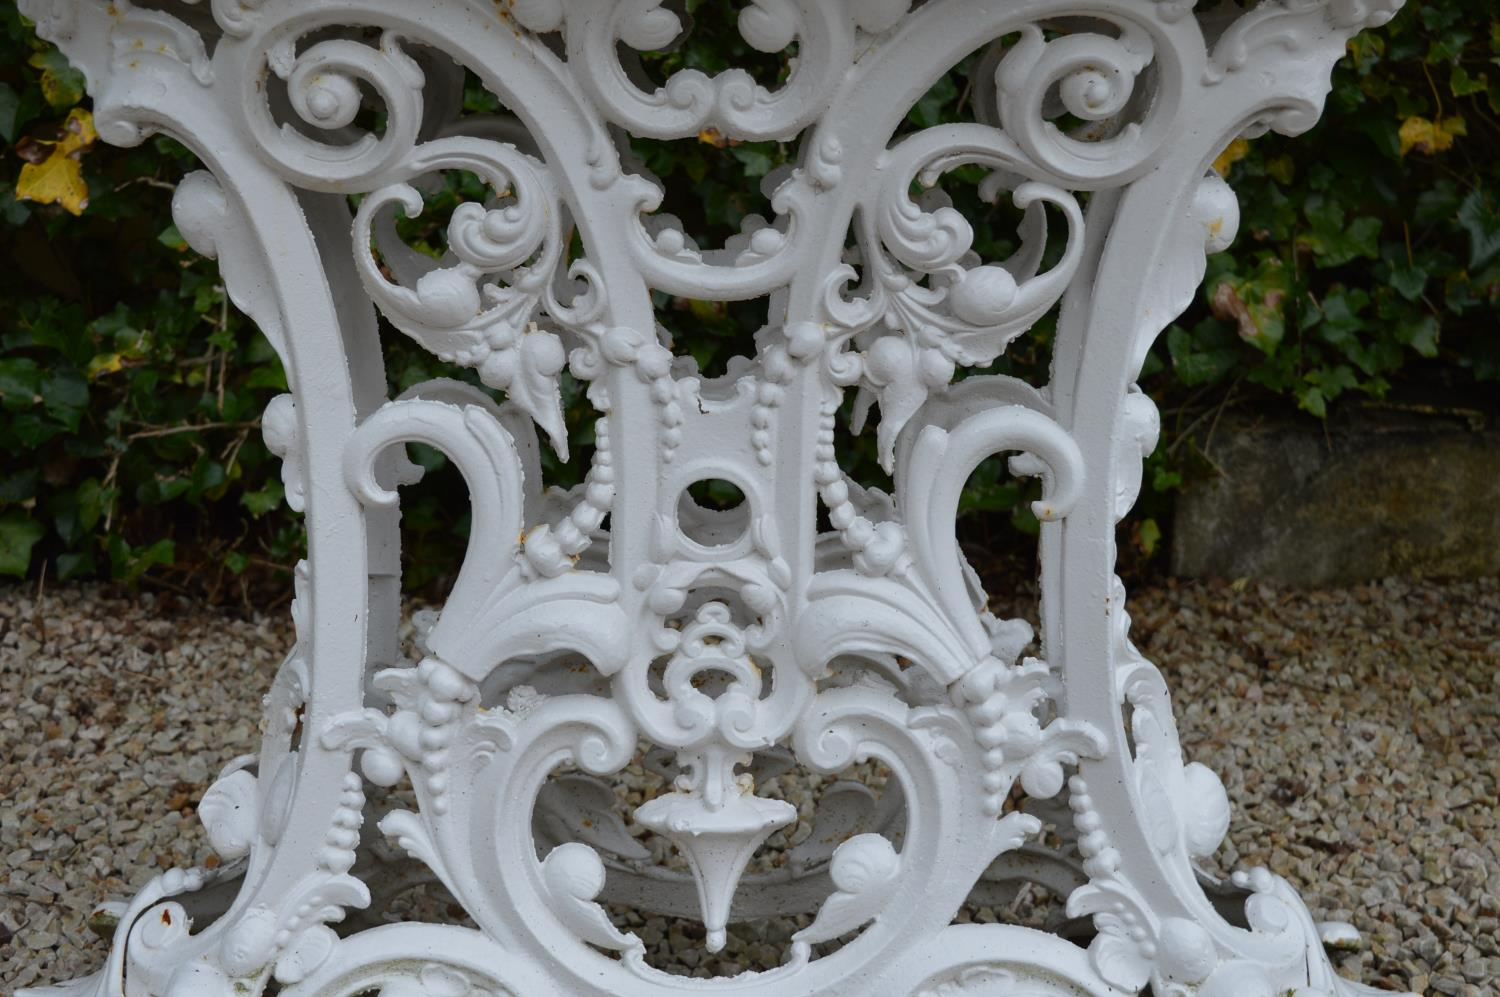 Cast iron garden table marble top in the Coalbrookdale style. 90W 75H 36D - Image 2 of 3